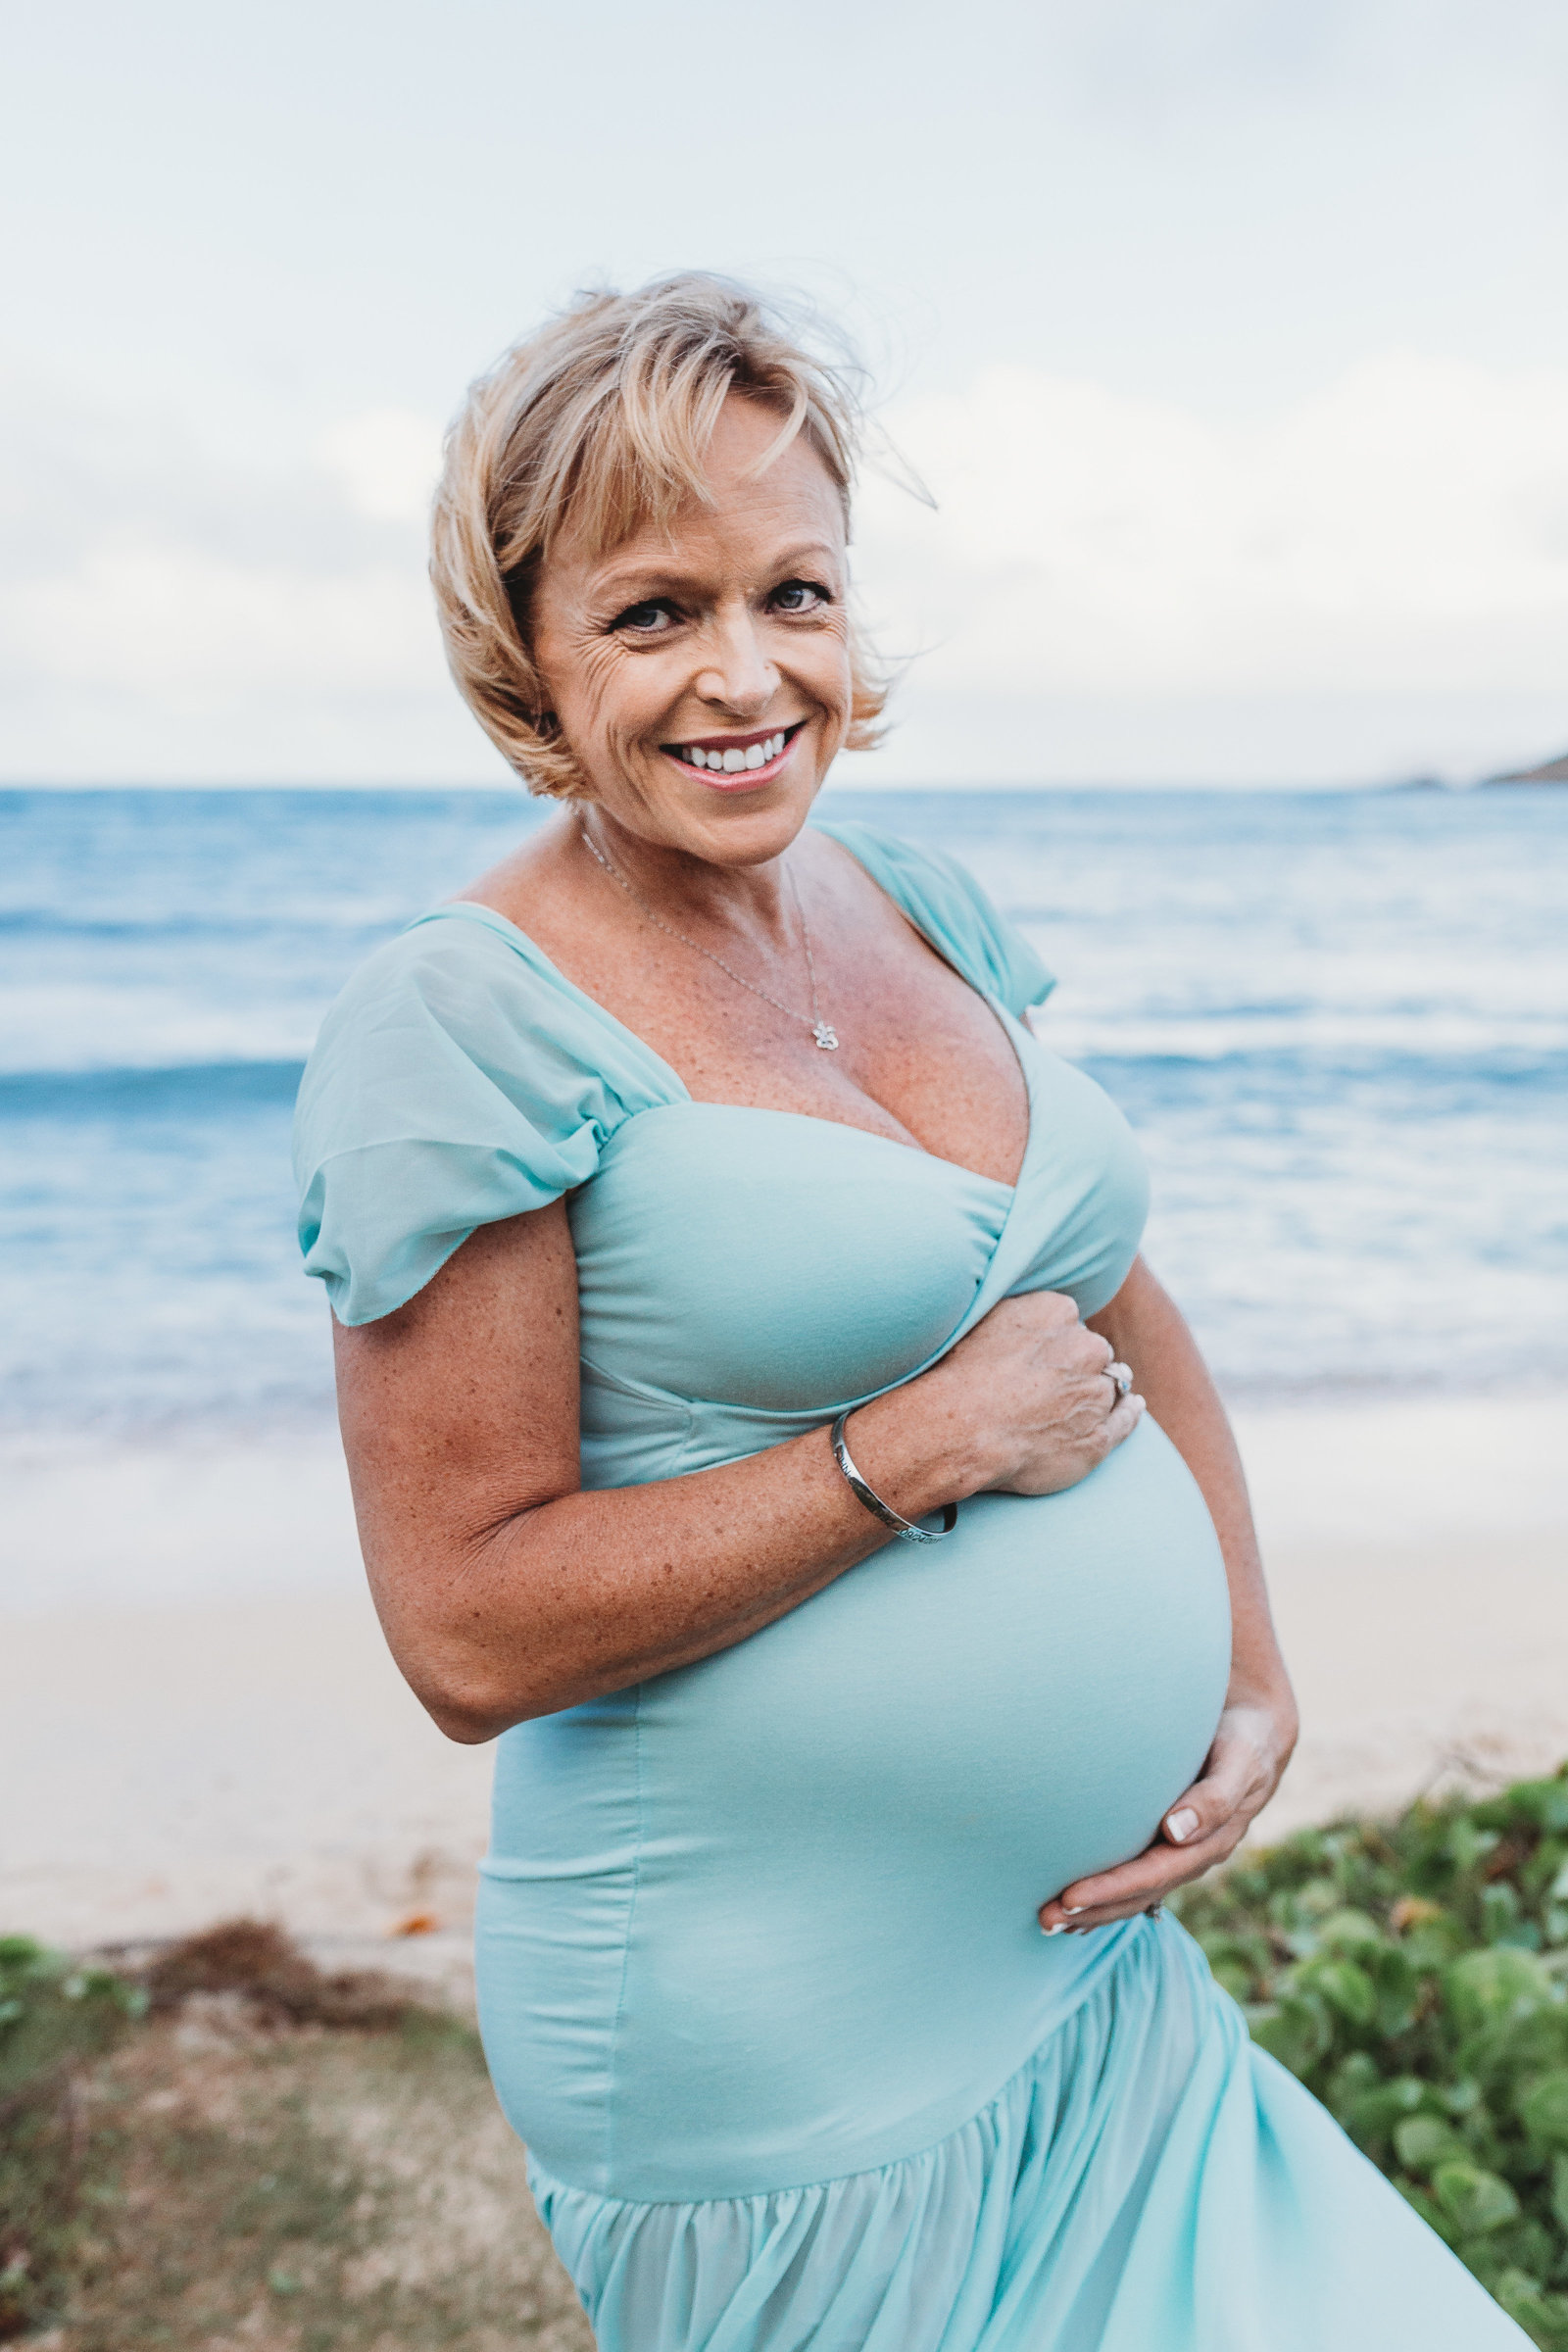 maternity Photoshoot Kualoa Beach Oahu Hawaii Brooke flanagan Photography-3